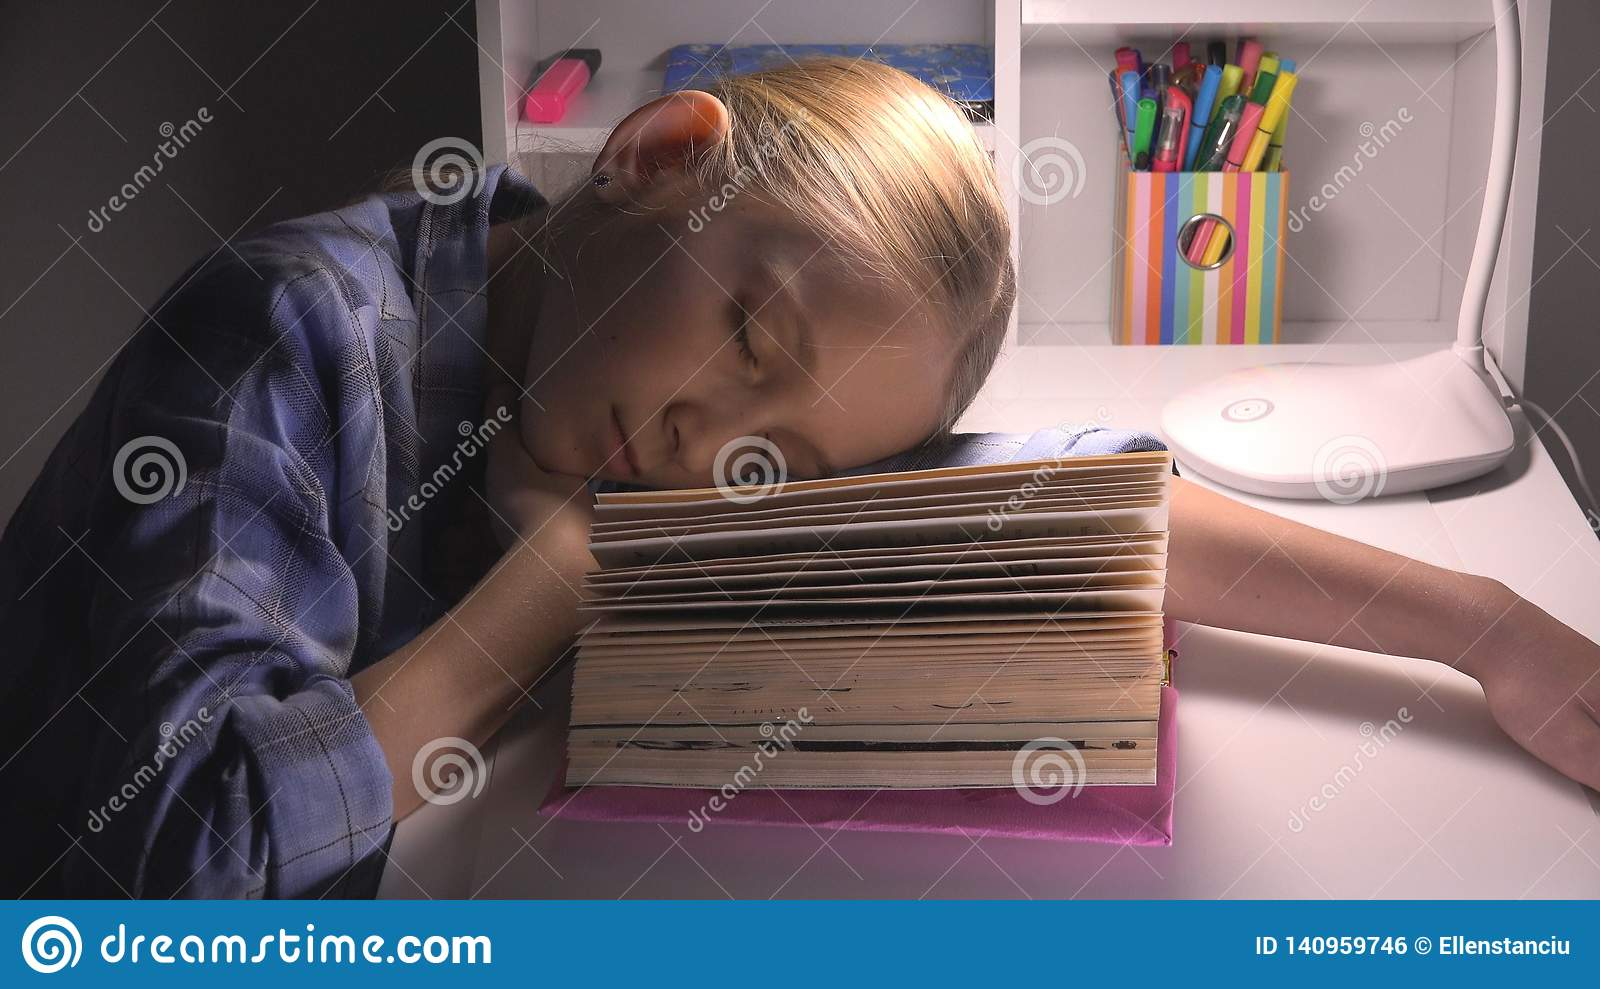 Child Sleeping, Tired Eyes Girl Portrait Studying, Reading, Kid Learning Library